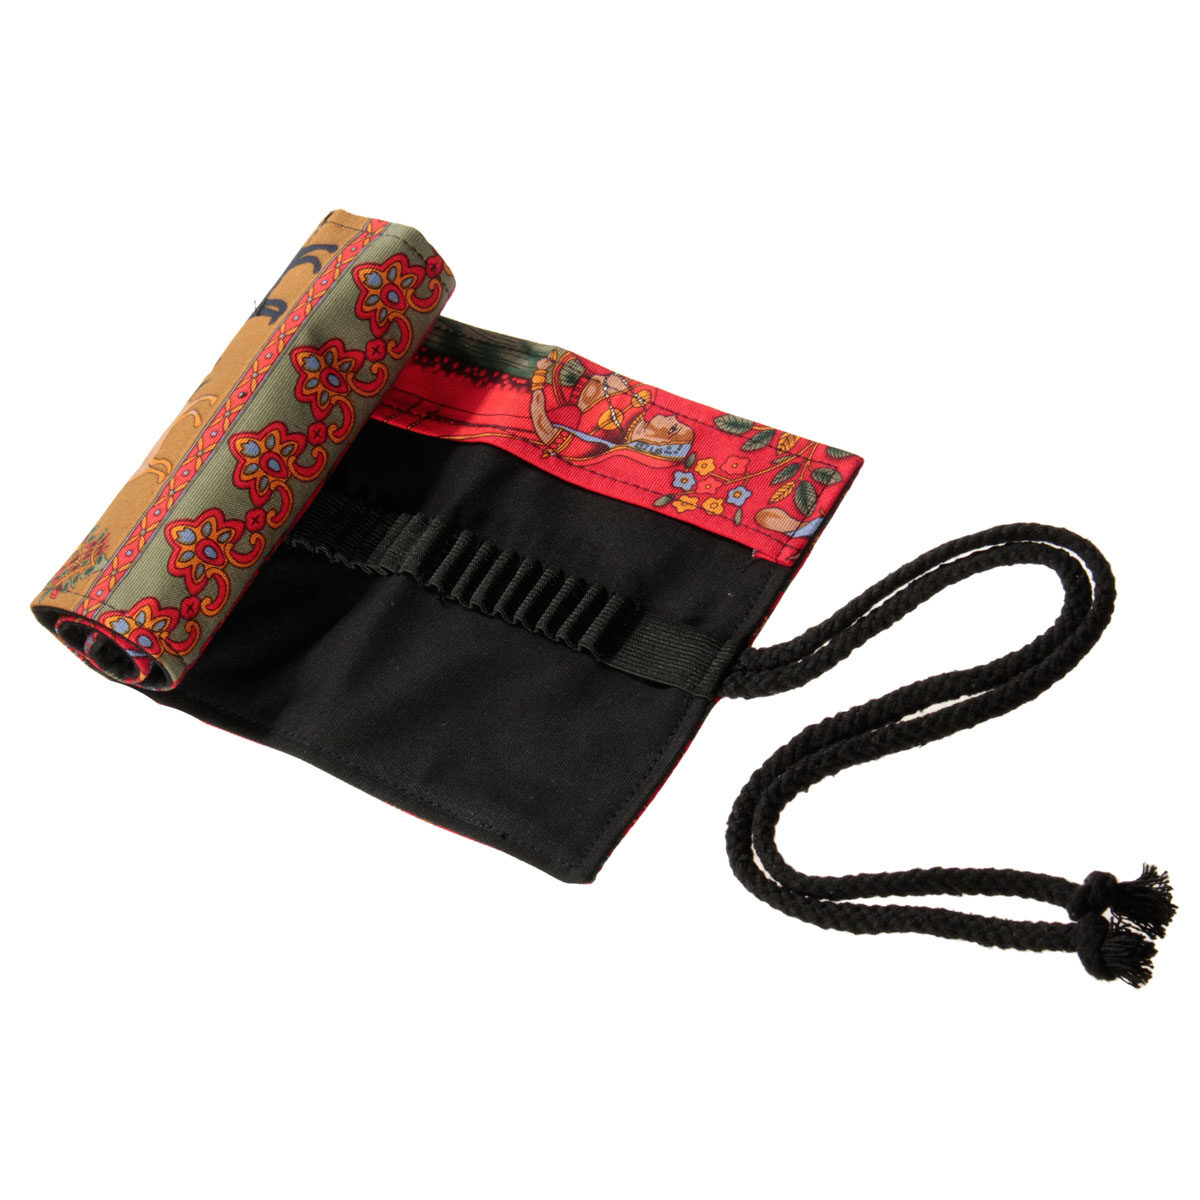 48 Hole Ethnic Canvas Pencil Wrap Pen Roll Case Bag Storage Makeup Pouch Artist random olor - intl